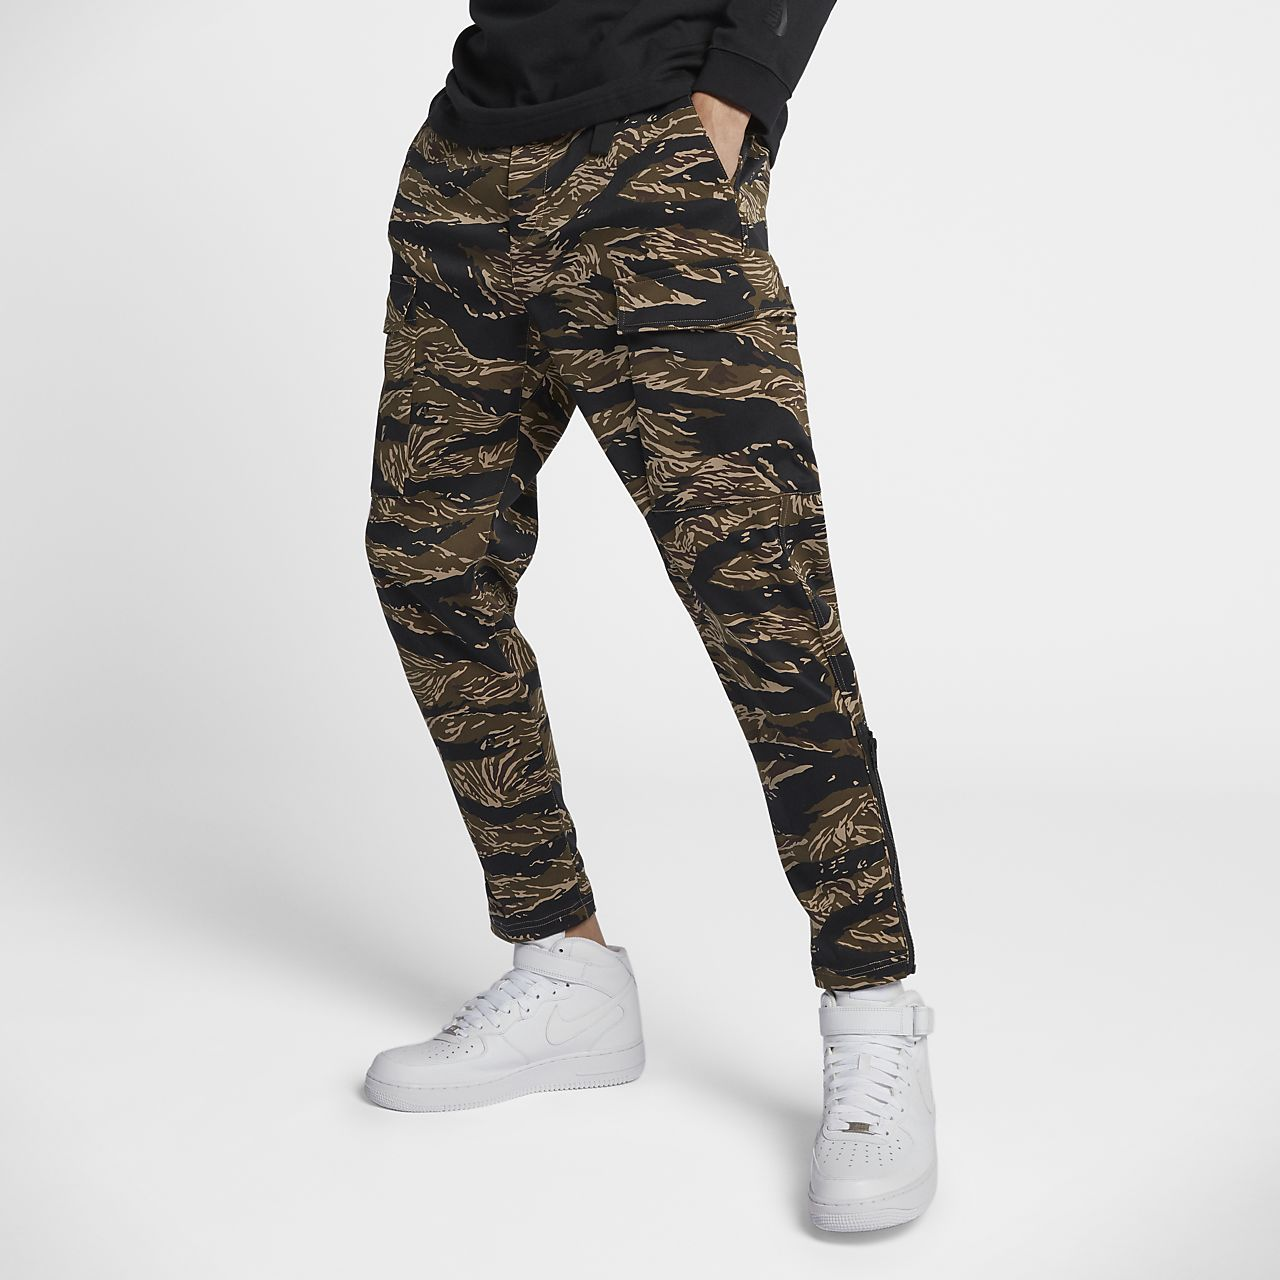 5fd8a1a0c8 NikeLab Essentials Tiger Camo Men's Trousers. Nike.com ID